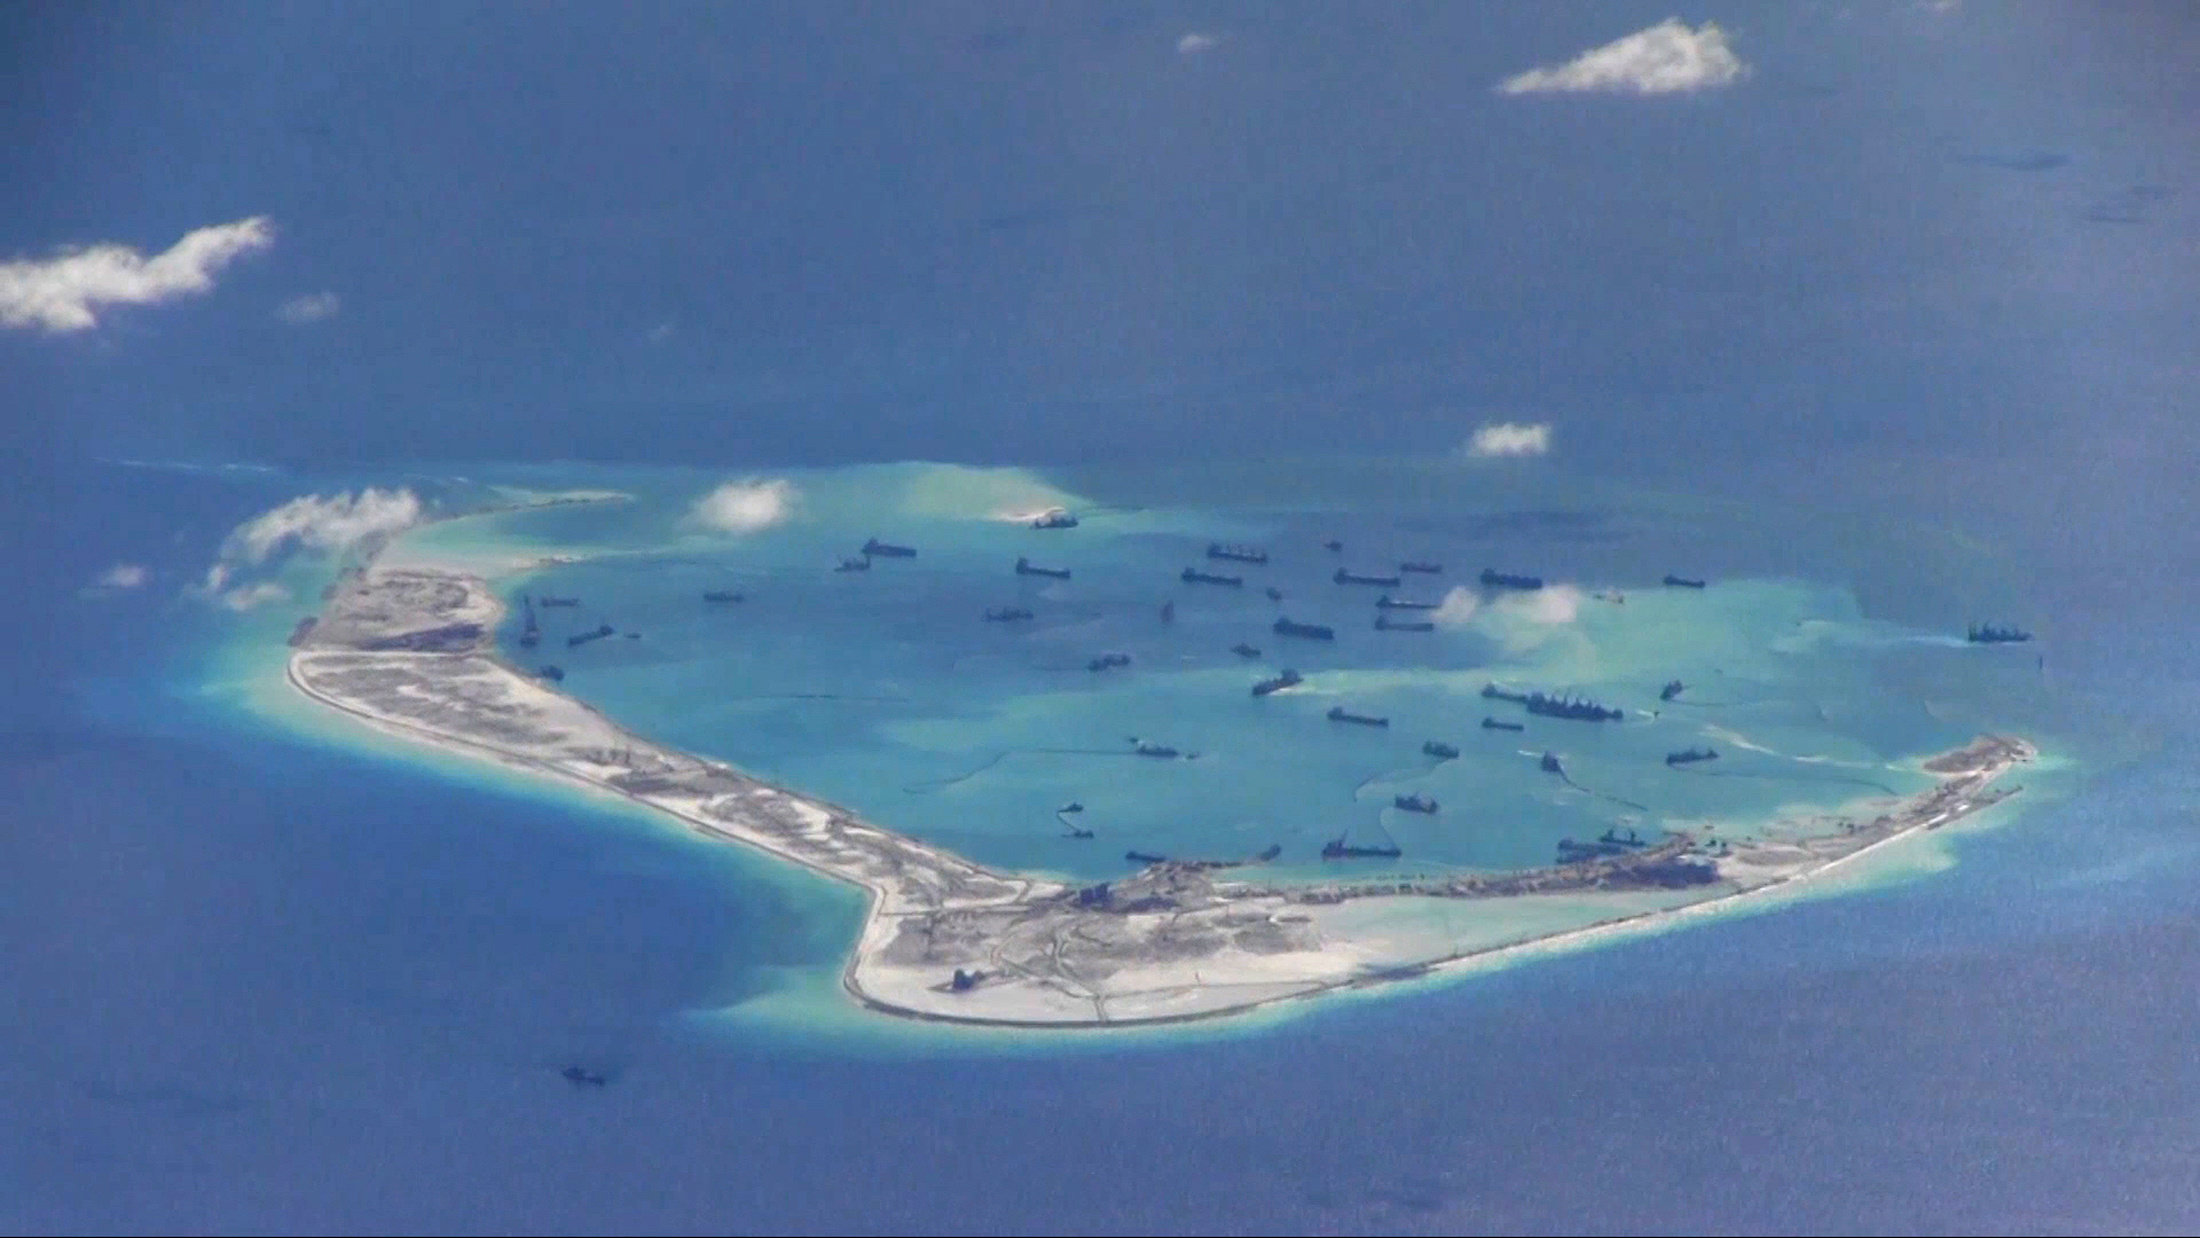 Chinese vessels in South China Sea